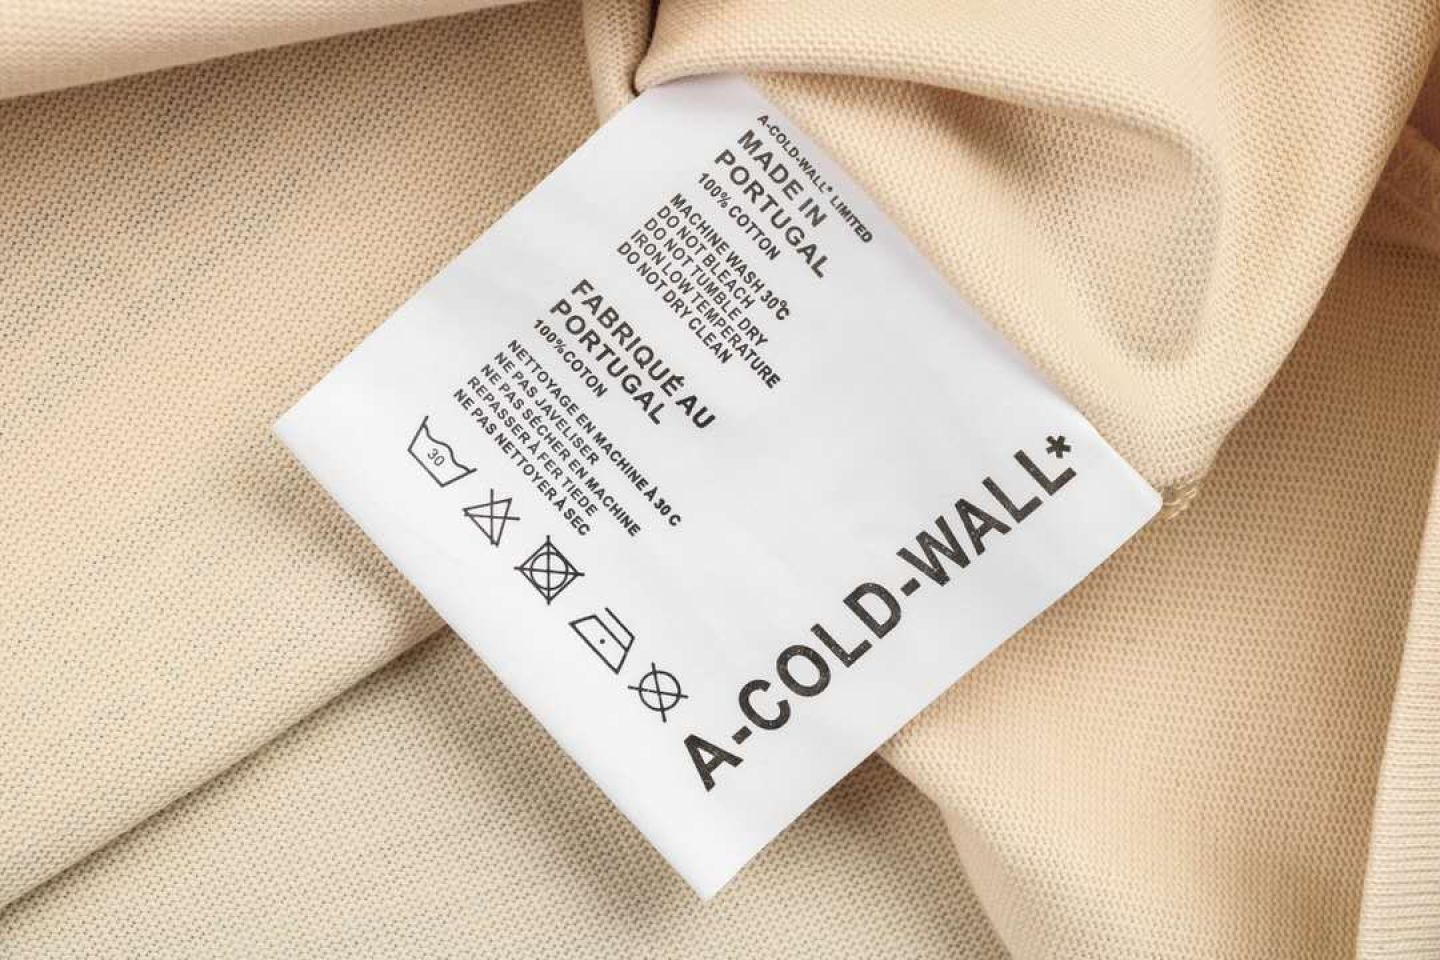 Shirt A-COLD-WALL cold wall oil painting photo short sleeve beige 3 a_cold_wall_cold_wall_oil_painting_photo_short_sleeve_beige__3